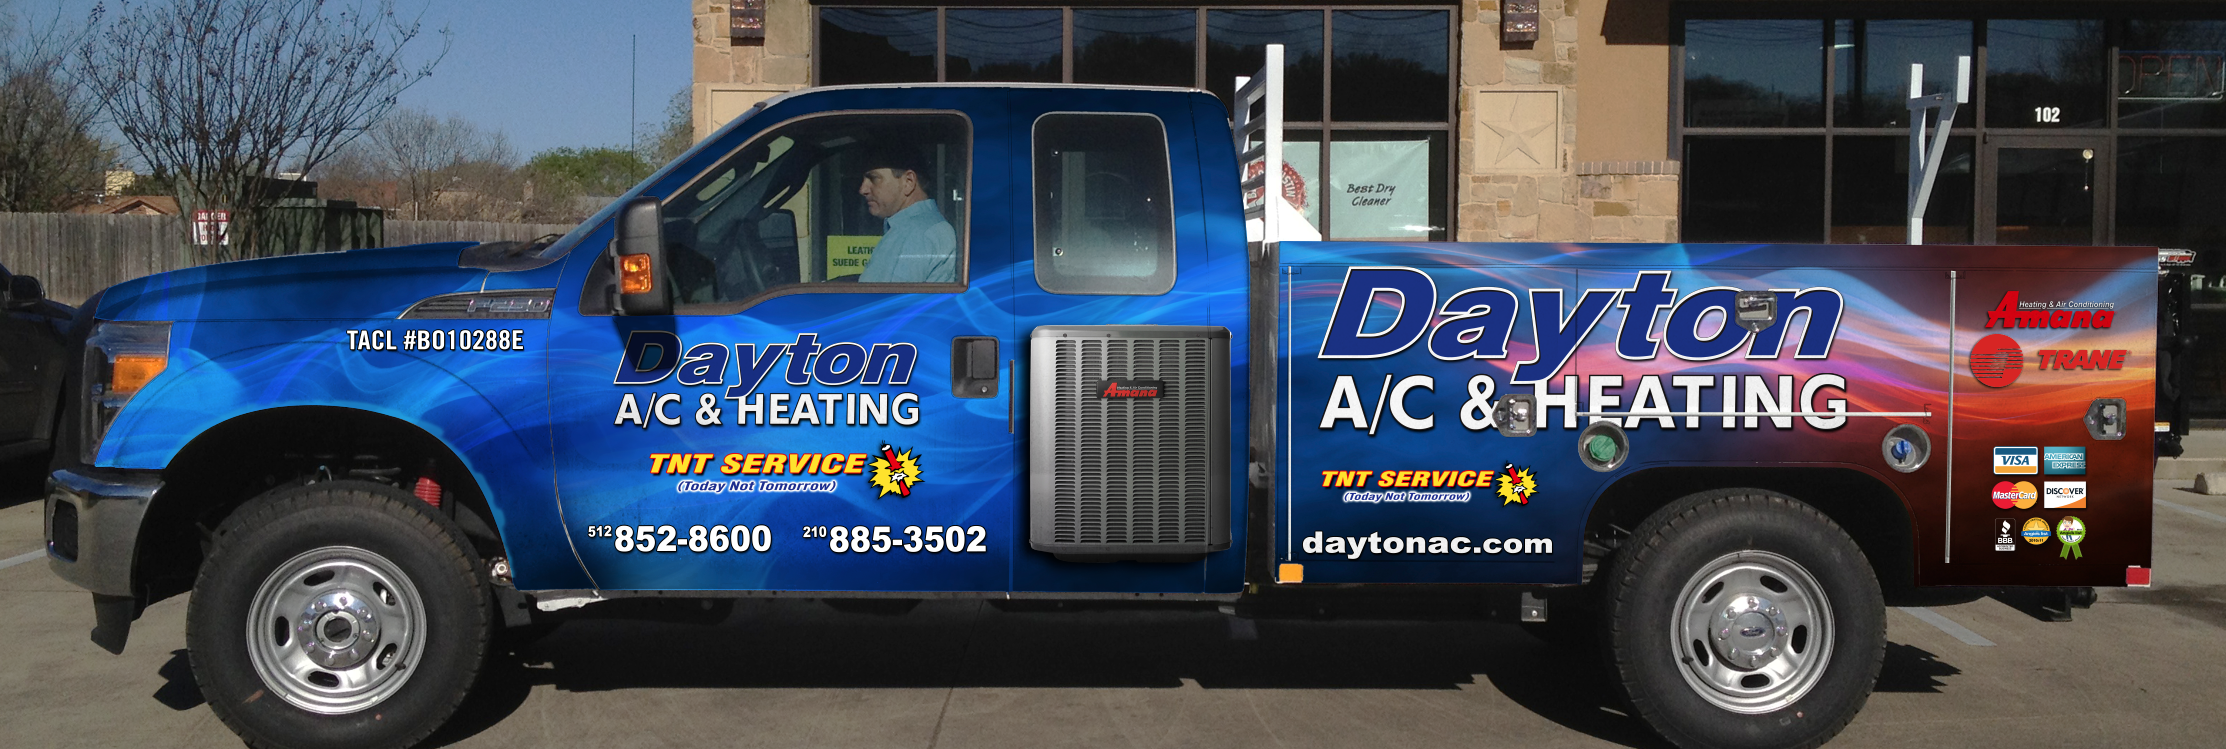 Dayton AC and Heating New Truck